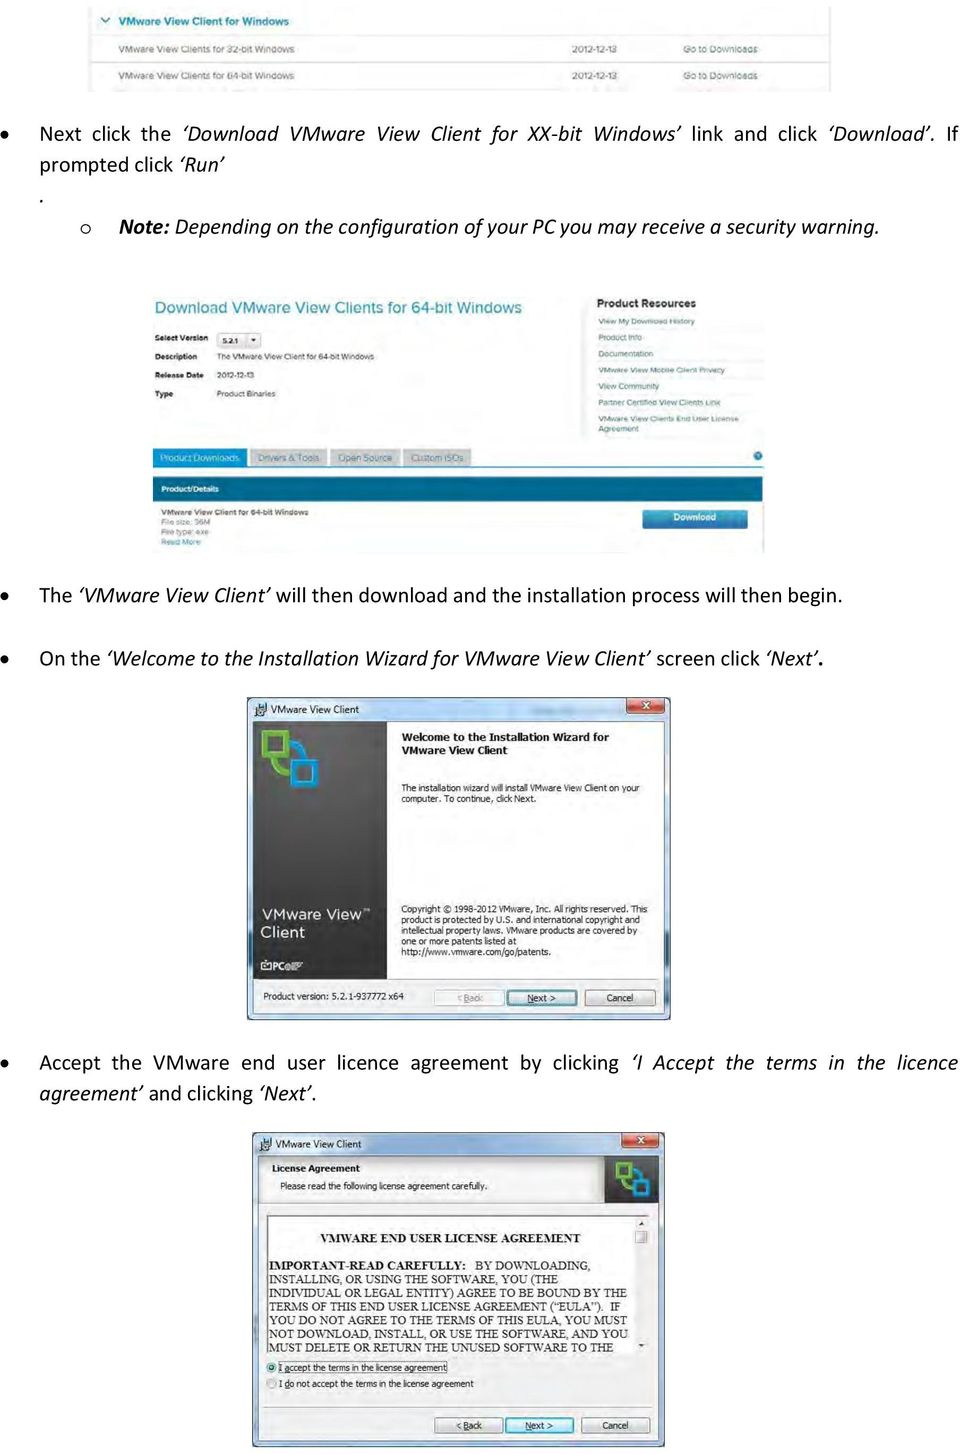 The VMware View Client will then download and the installation process will then begin.